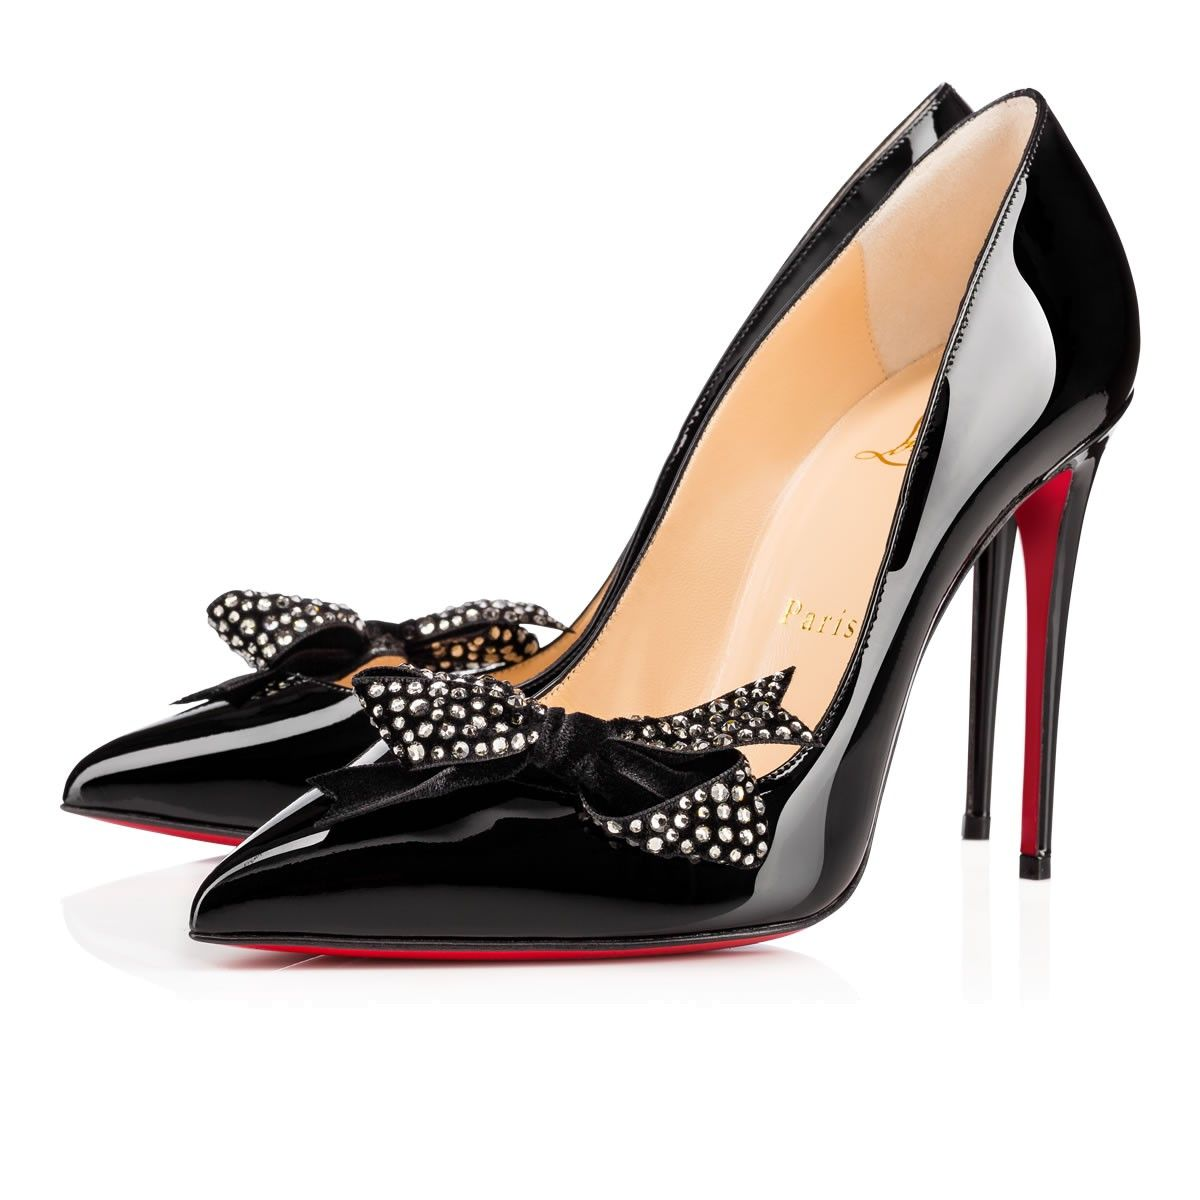 56452a56edb clbootsfashion on in 2019 | Christian Louboutin | Shoes, Chanel ...